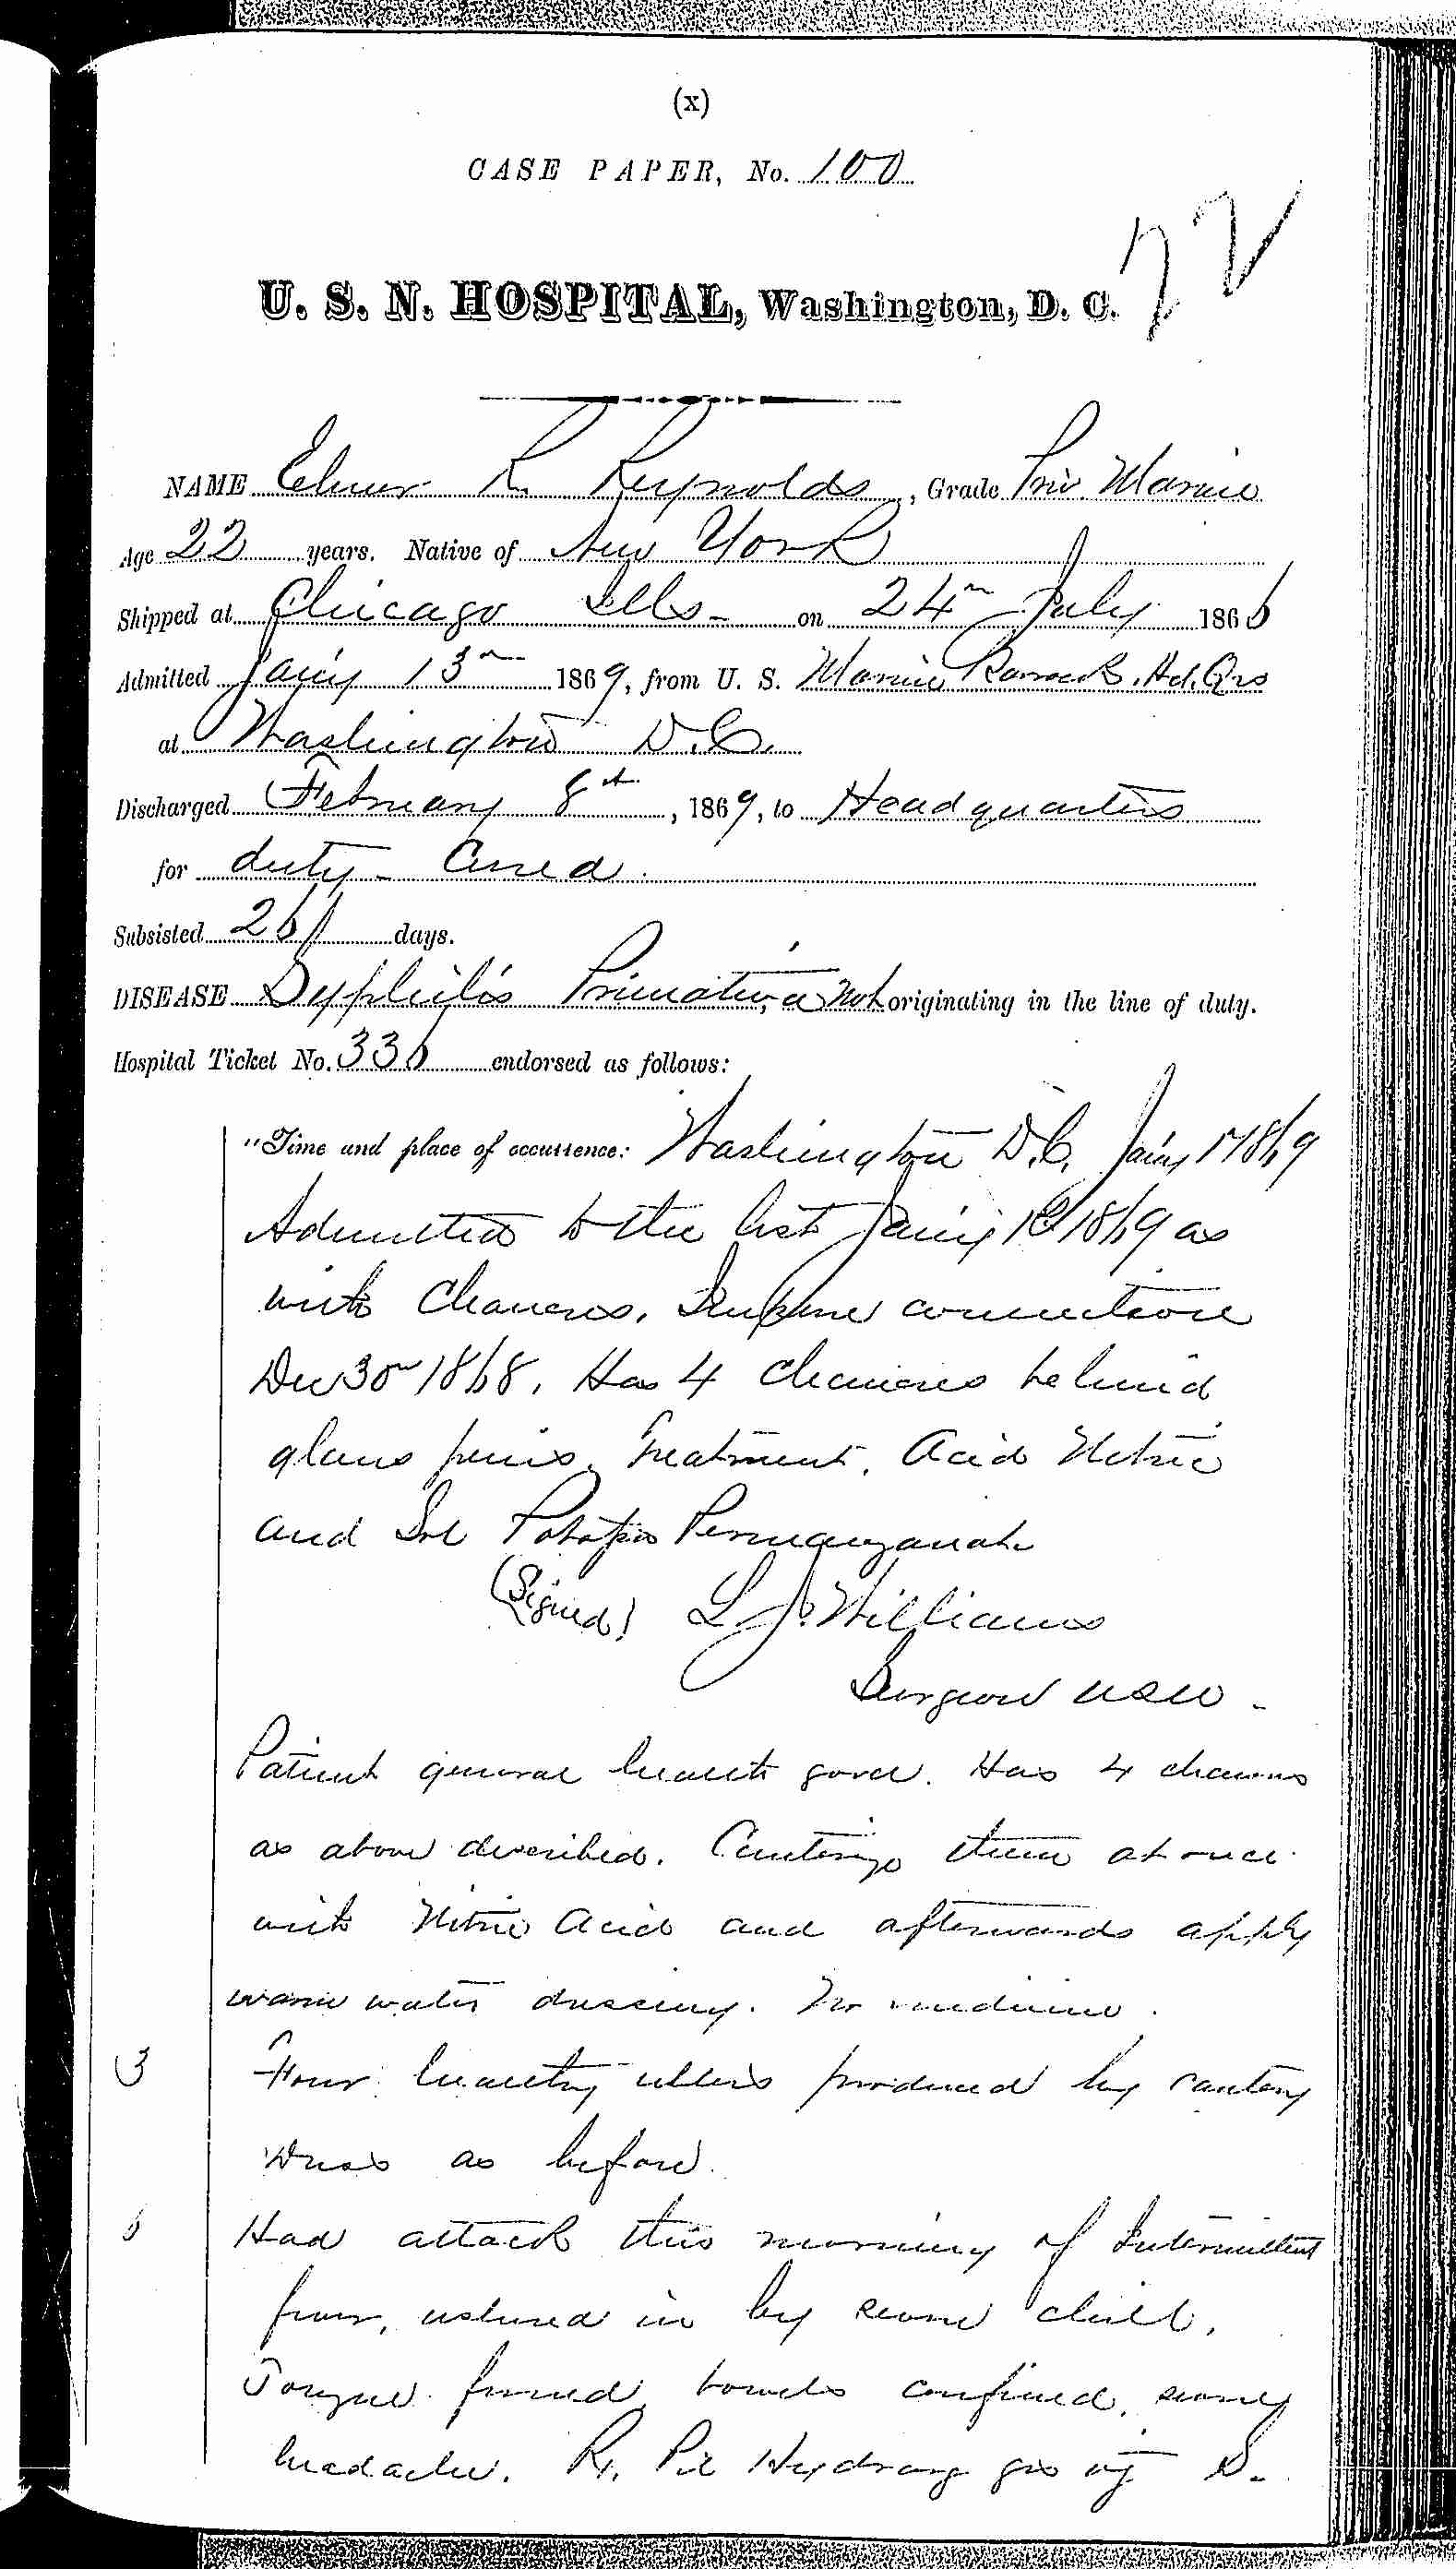 Entry for E. R. Reynolds (page 1 of 2) in the log Hospital Tickets and Case Papers - Naval Hospital - Washington, D.C. - 1868-69